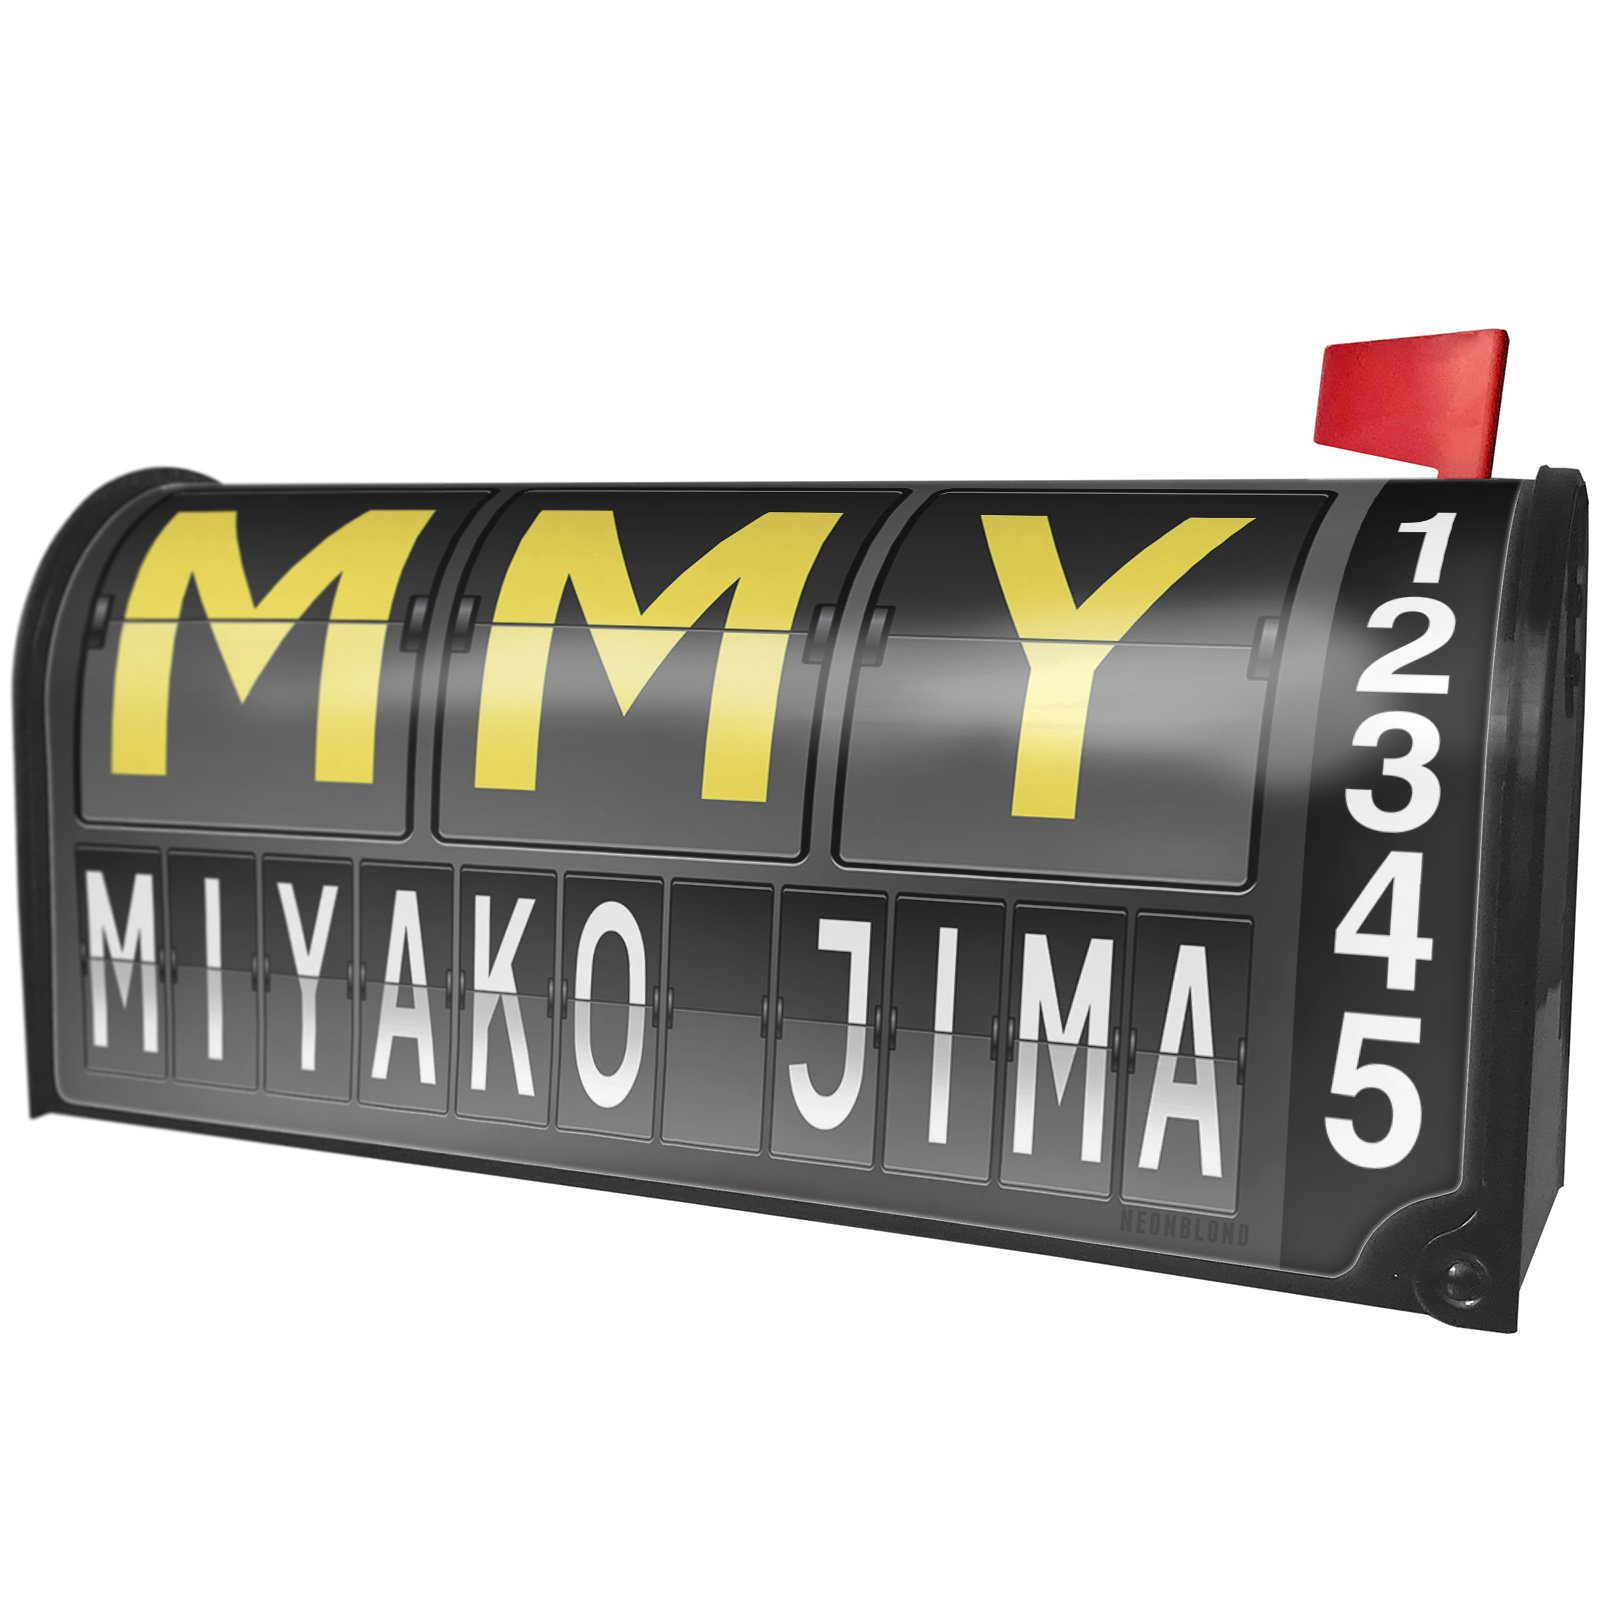 NEONBLOND MMY Airport Code for Miyako Jima Magnetic Mailbox Cover Custom Numbers